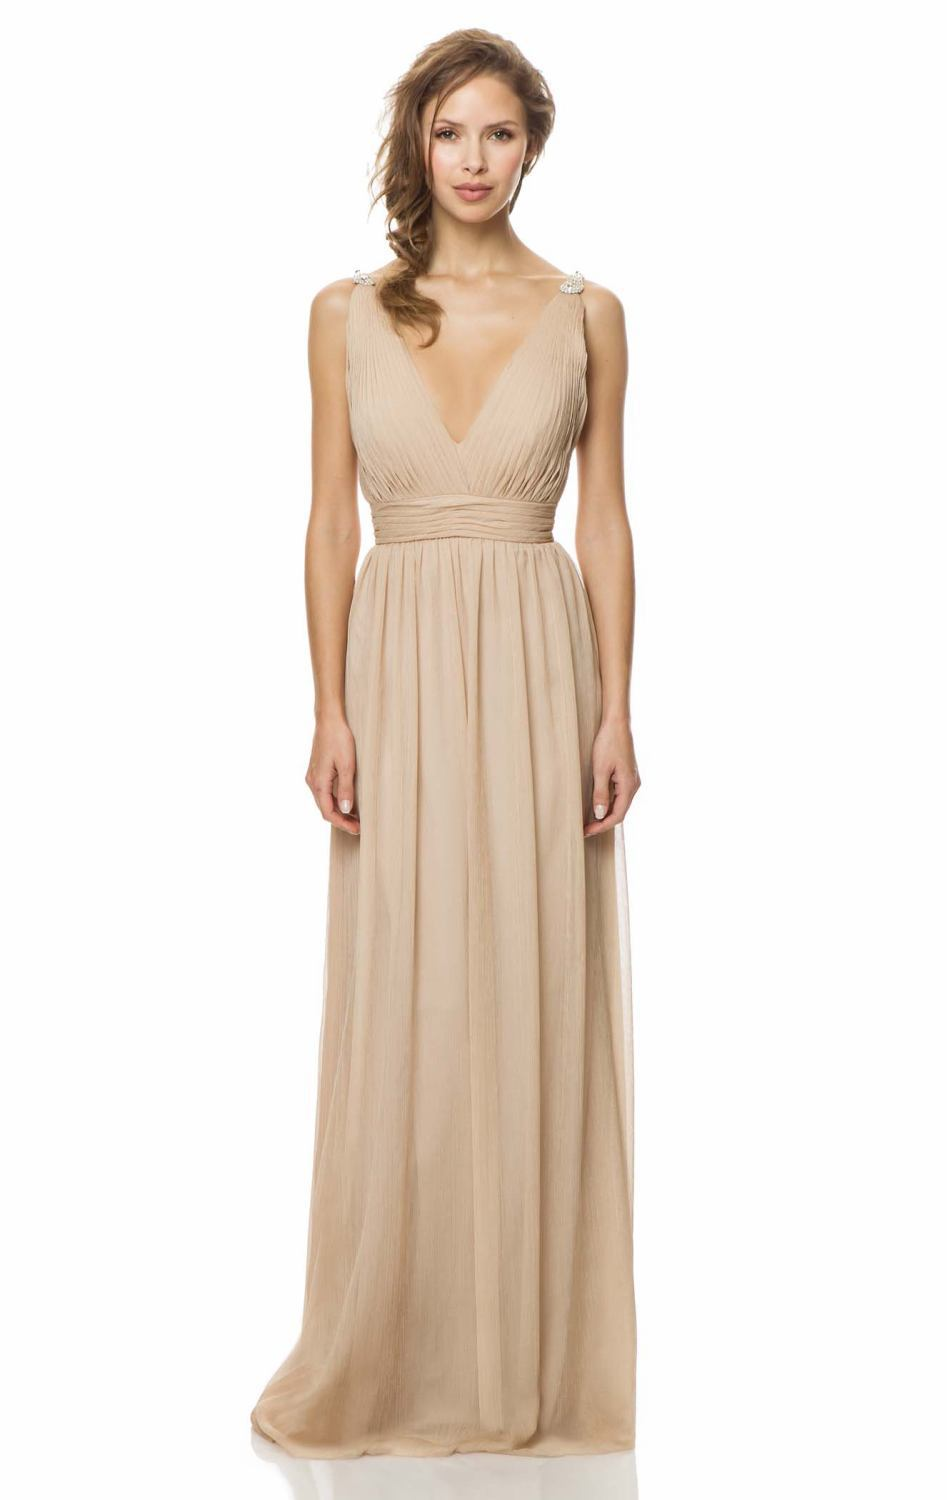 Fashion style Bridesmaid beige dress for lady